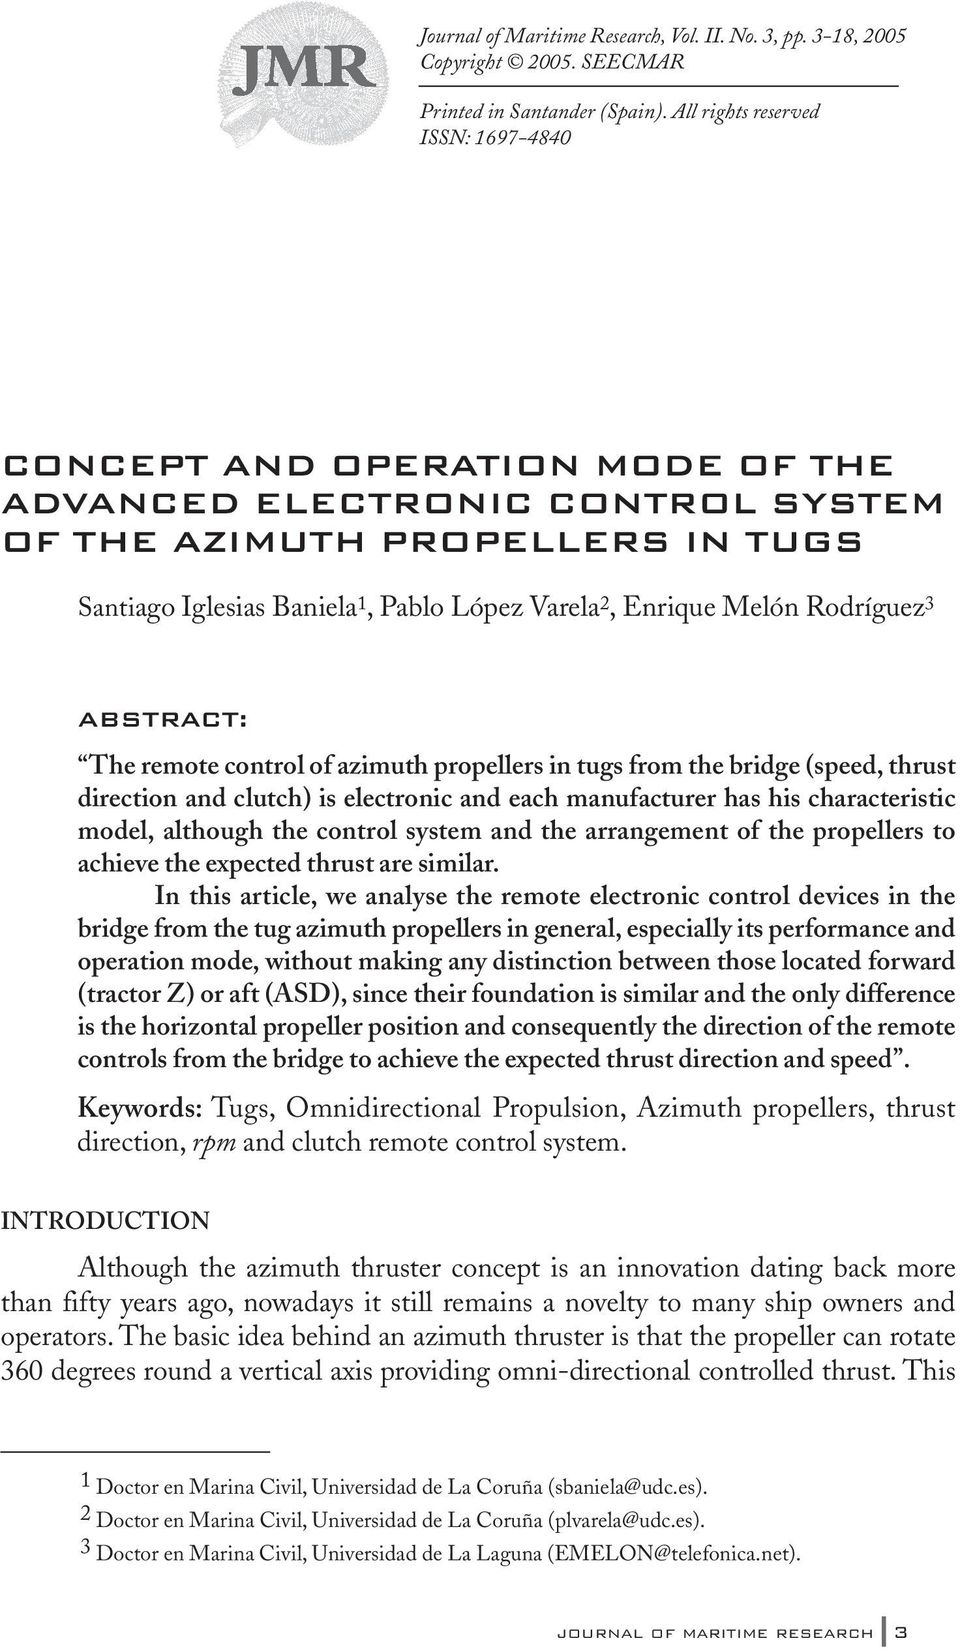 Melón Rodríguez 3 ABSTRACT: The remote control of azimuth propellers in tugs from the bridge (speed, thrust direction and clutch) is electronic and each manufacturer has his characteristic model,